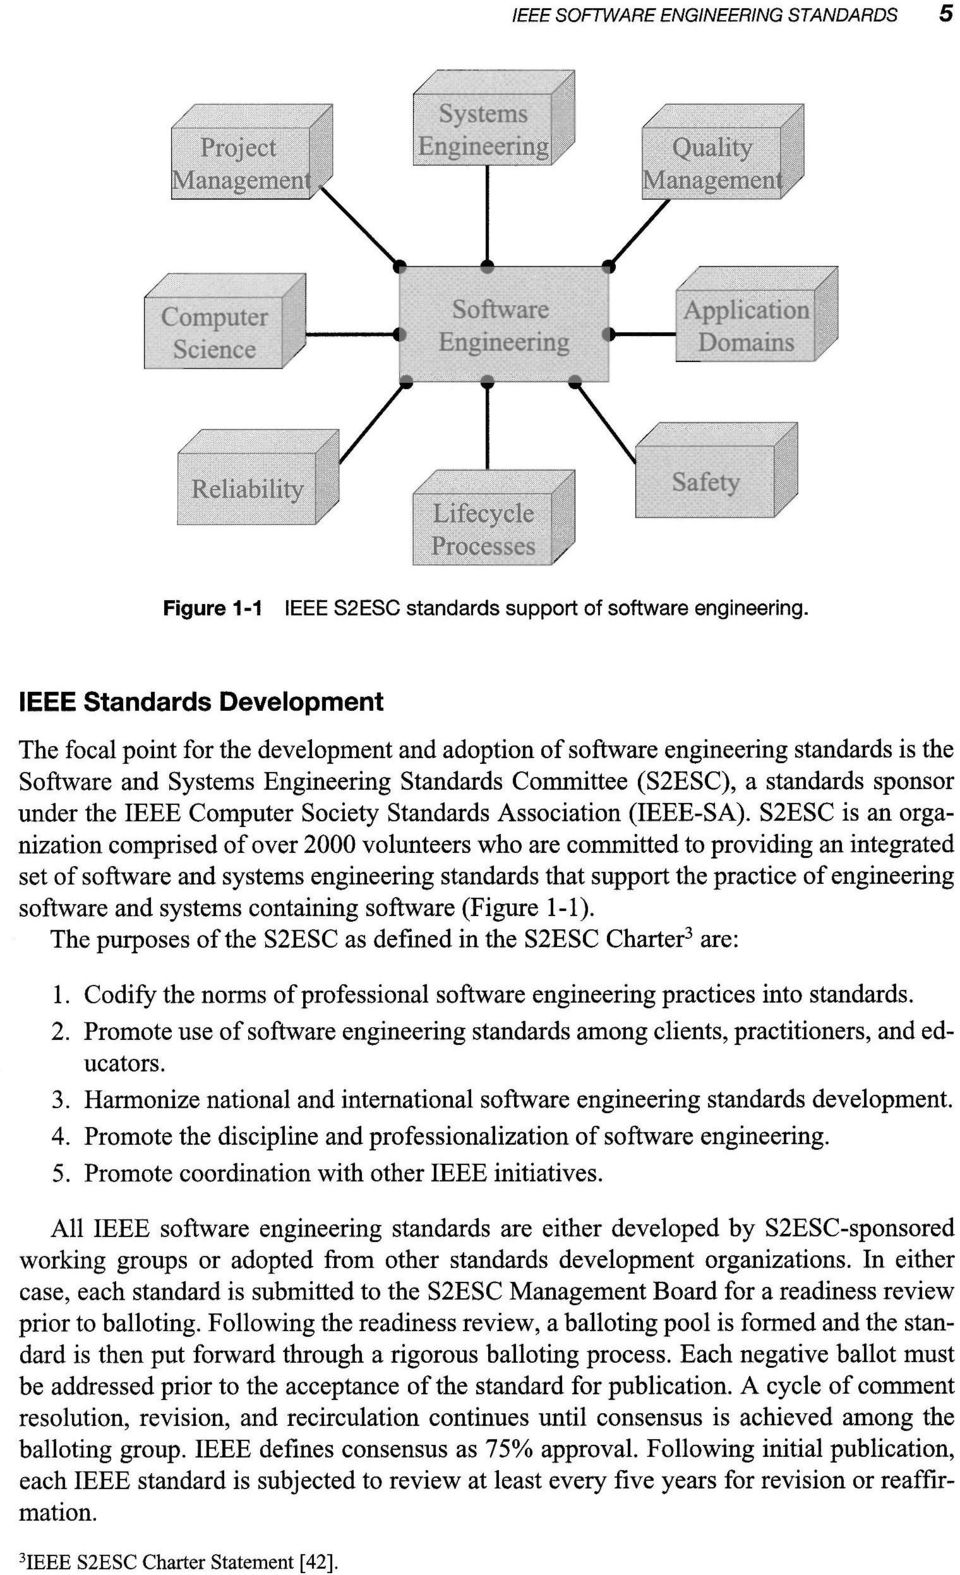 under the IEEE Computer Society Standards Association (IEEE-SA).